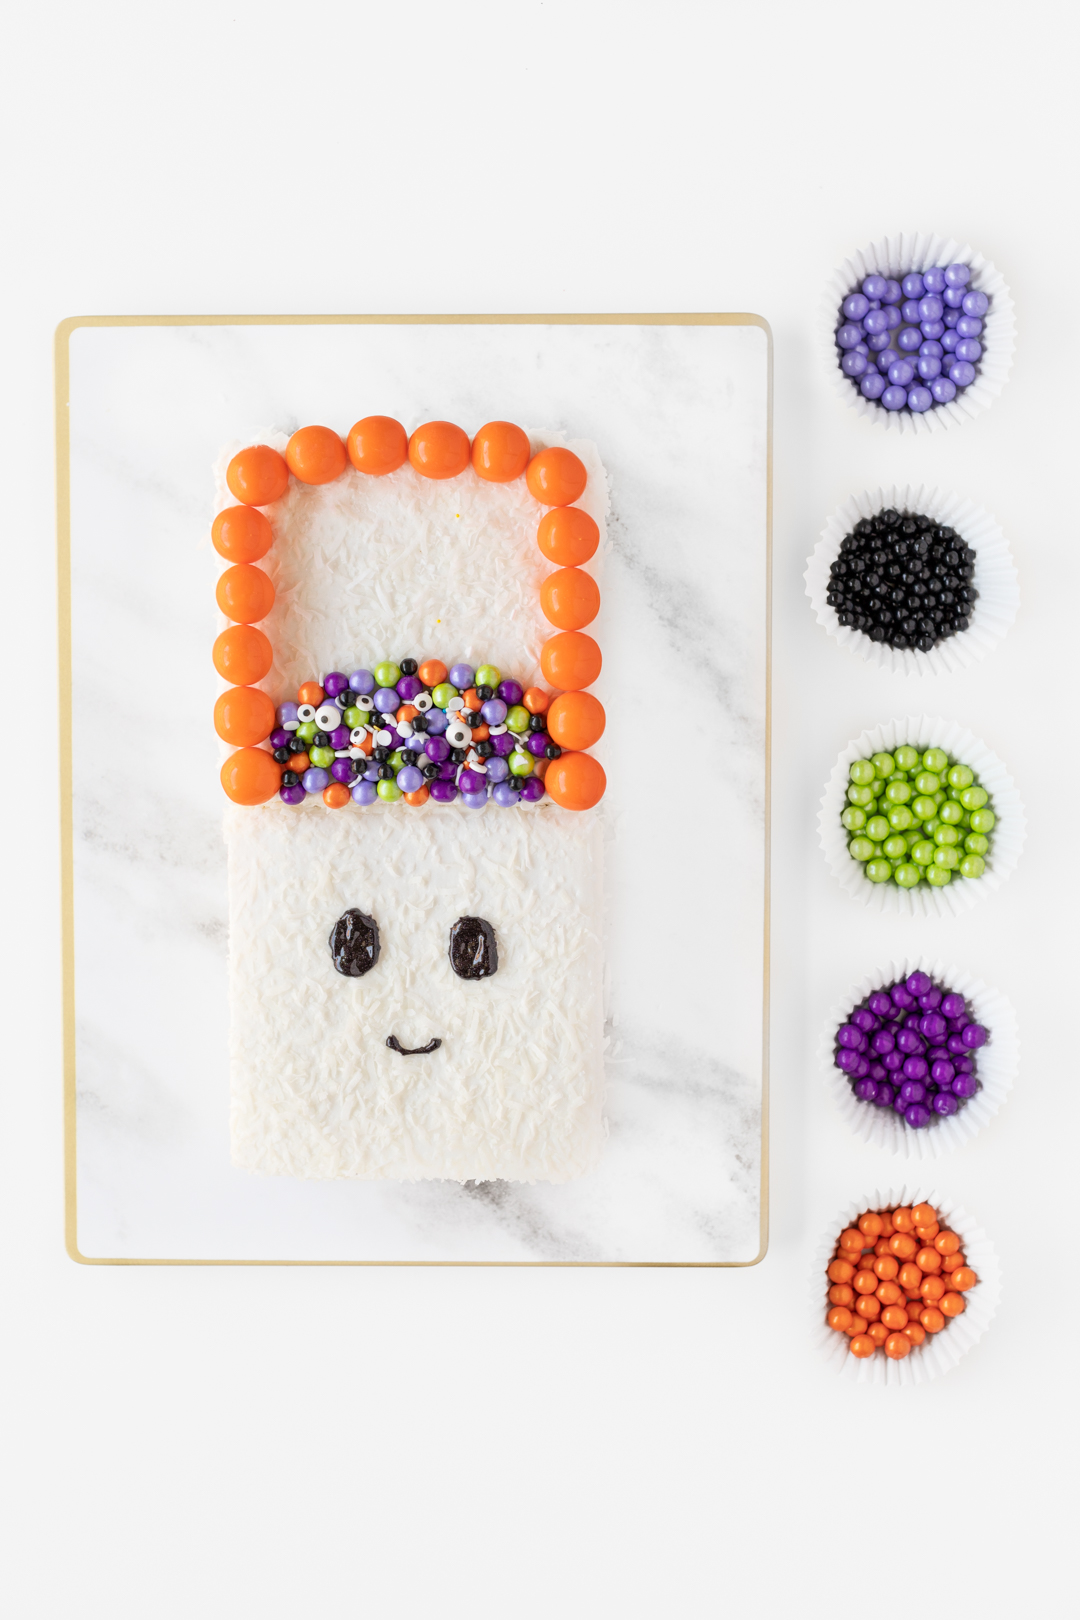 decorating a ghost cake with candies